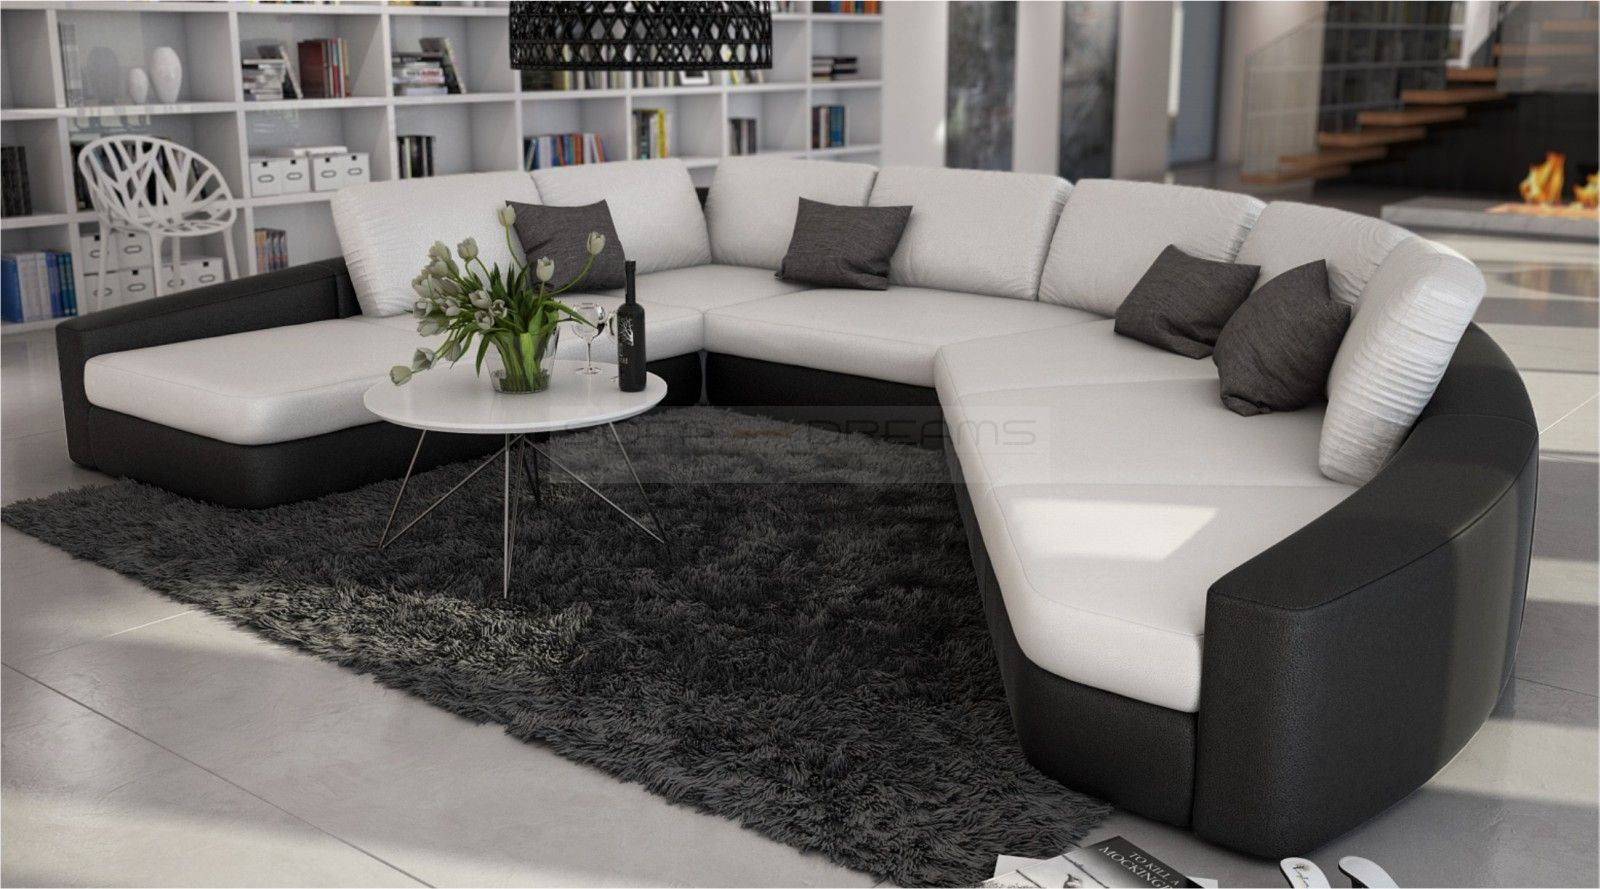 loungesofa rundsofa rina ecksofa designsofa eckcouch relaxsofa ebay. Black Bedroom Furniture Sets. Home Design Ideas